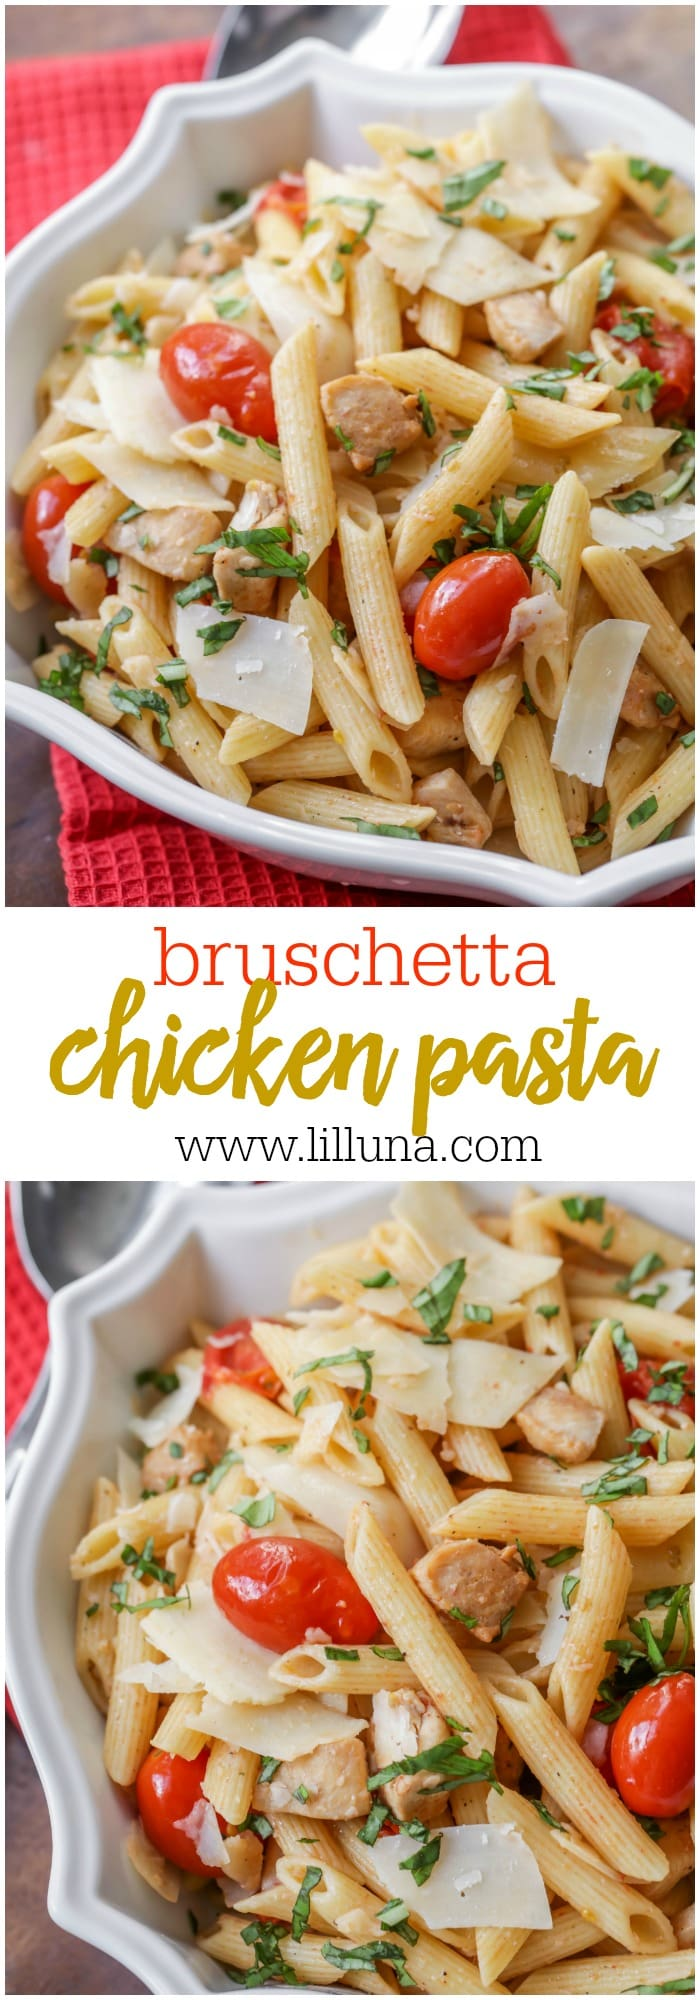 Bruschetta Chicken Pasta - perfect for barbecues and get togethers. It's filled with penne, chicken, tomatoes, basil and Parmesan!!